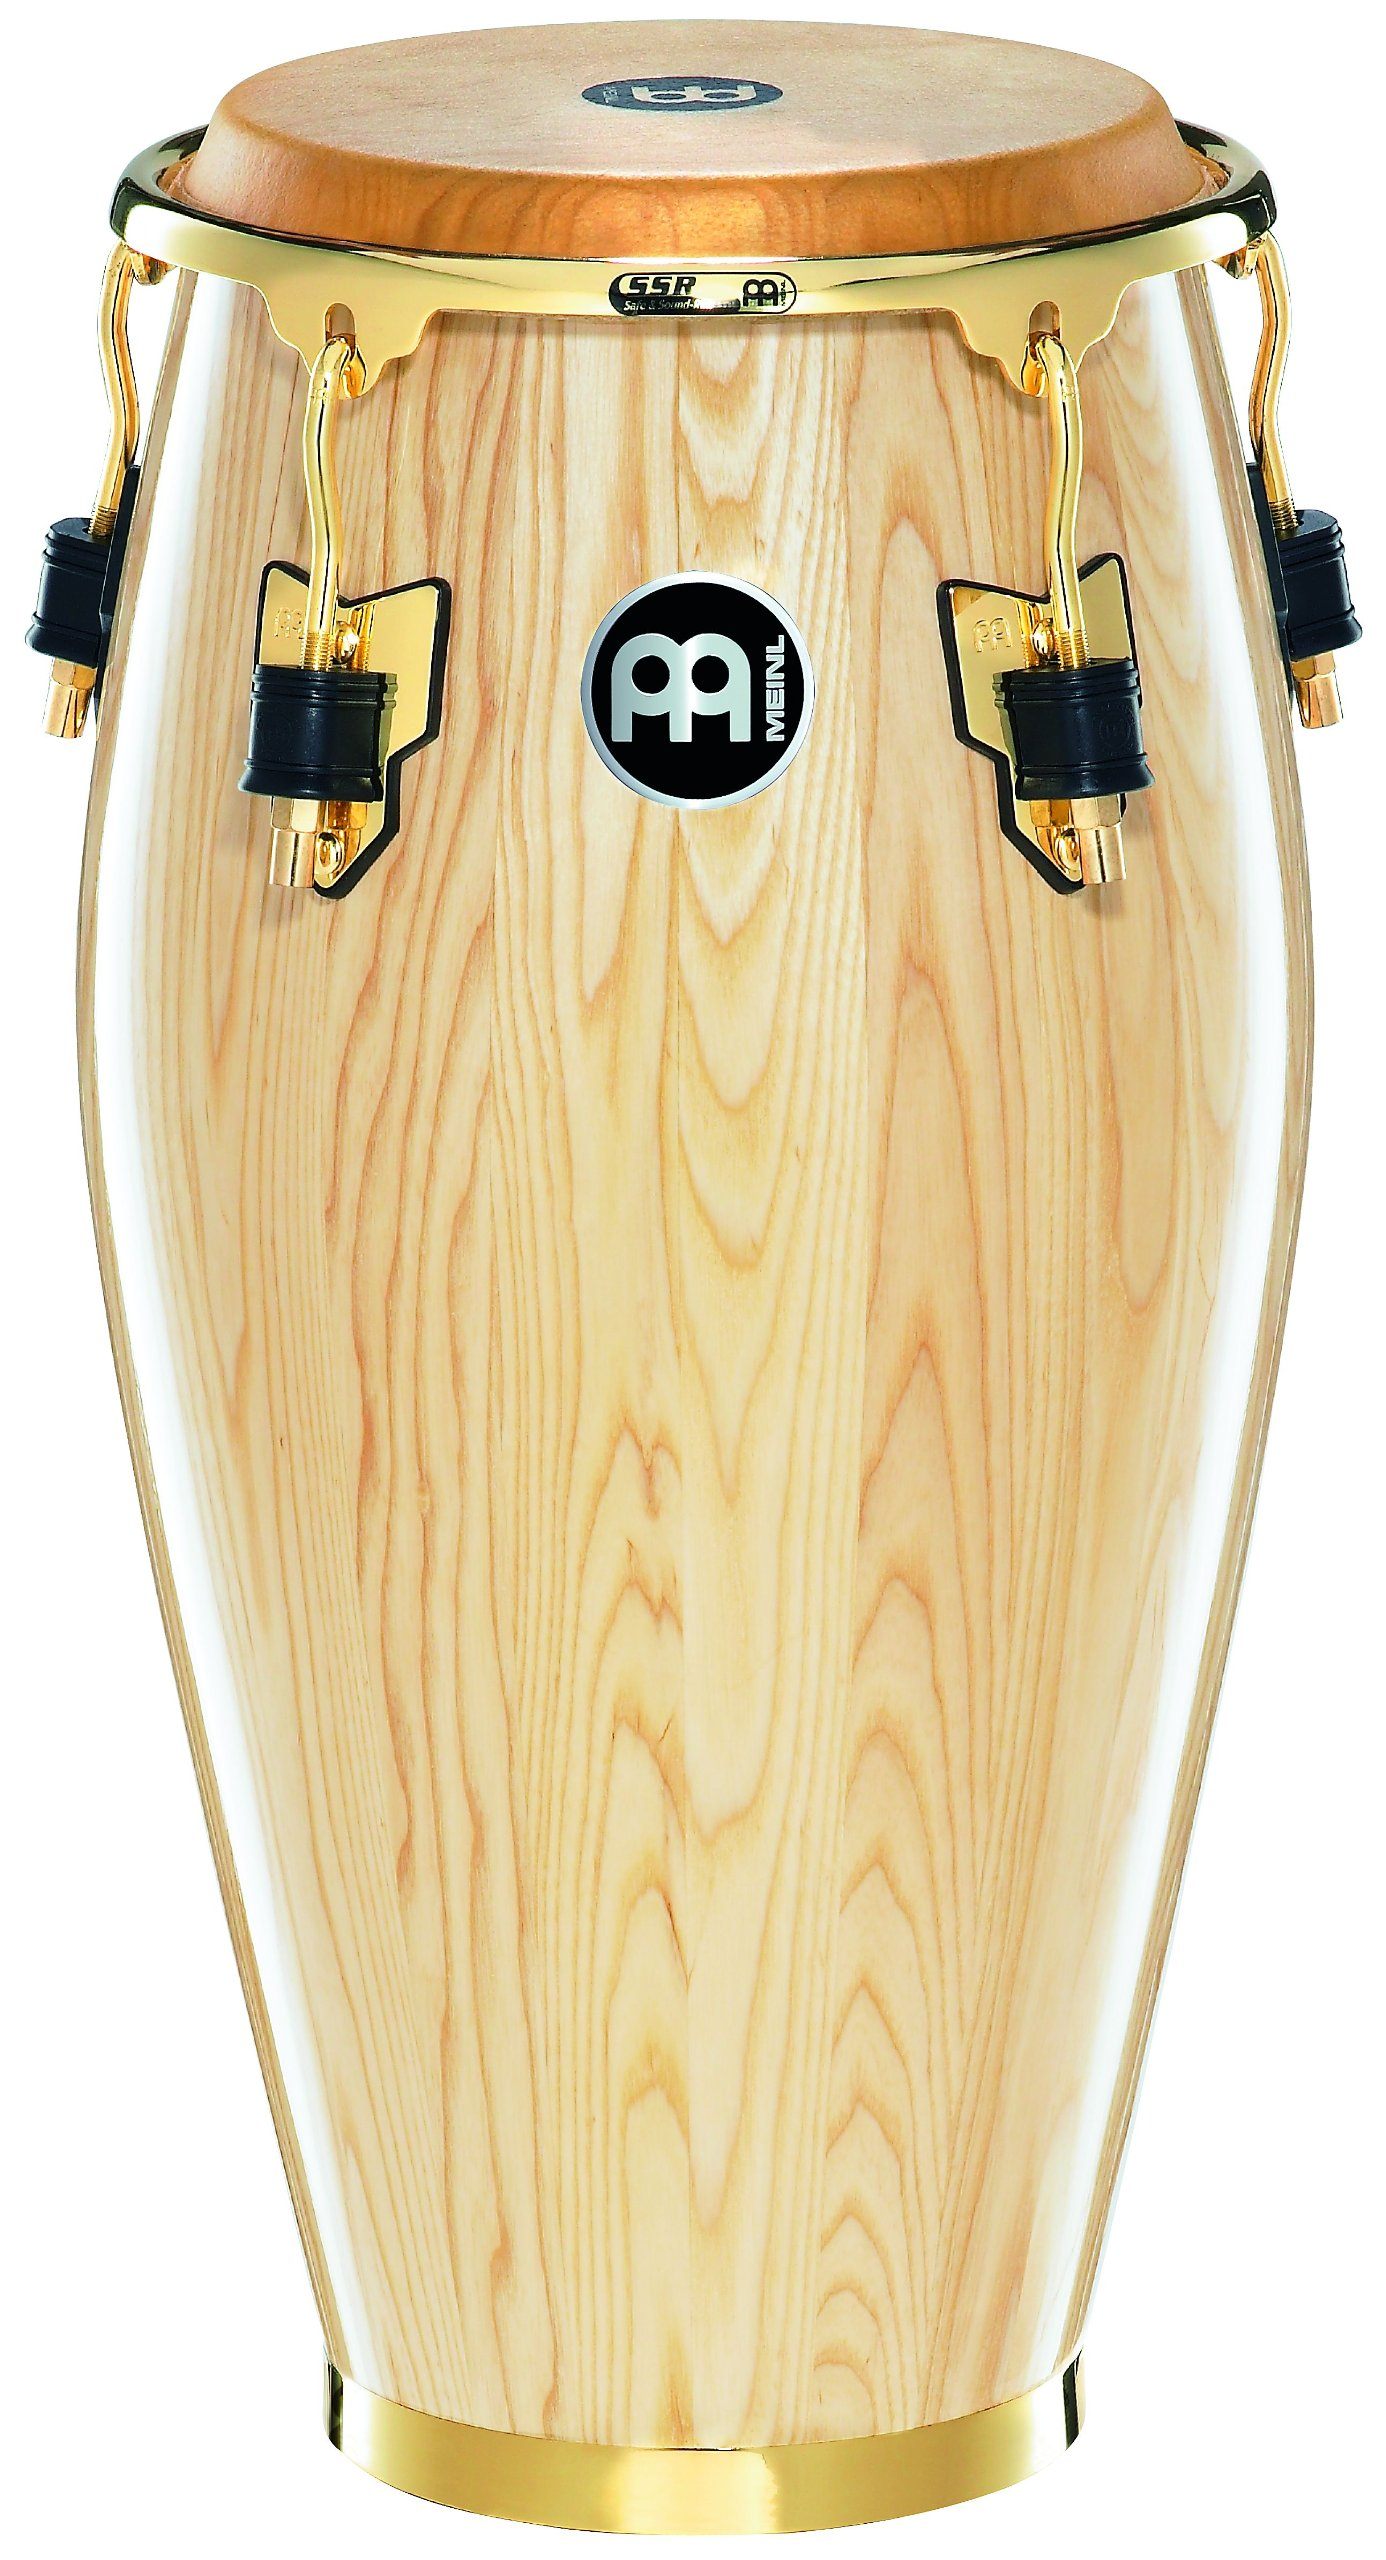 Meinl Percussion MSA11AWA Artist Series Mongo Santamaria 11-Inch Quinto, Natural by Meinl Percussion